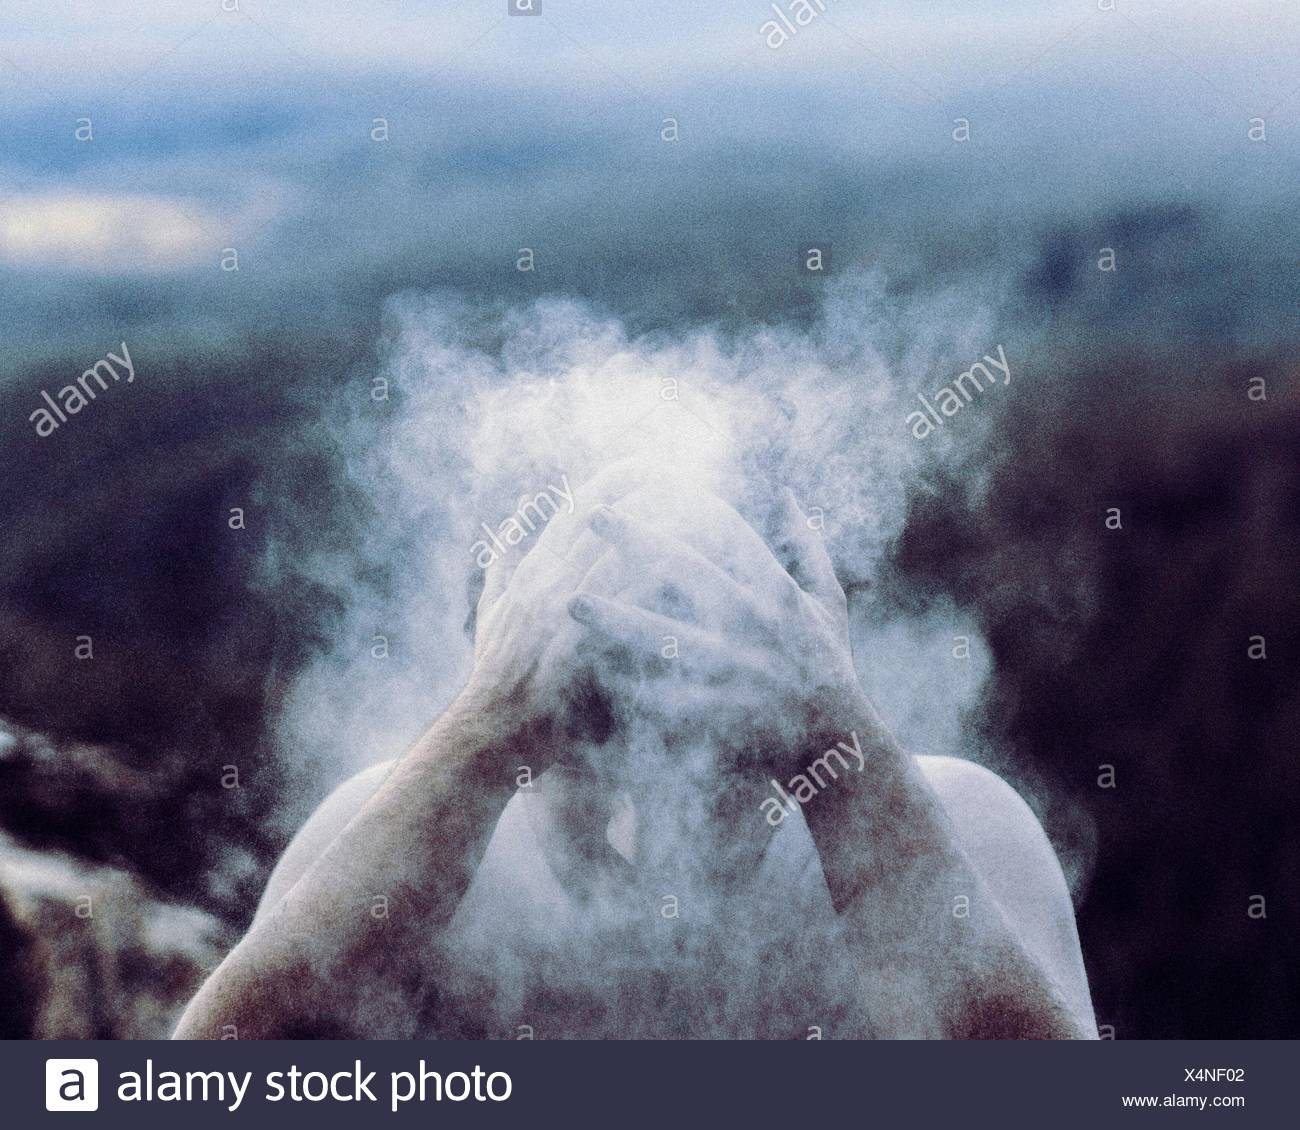 Man Brushing Off Powder From Head - Stock Image